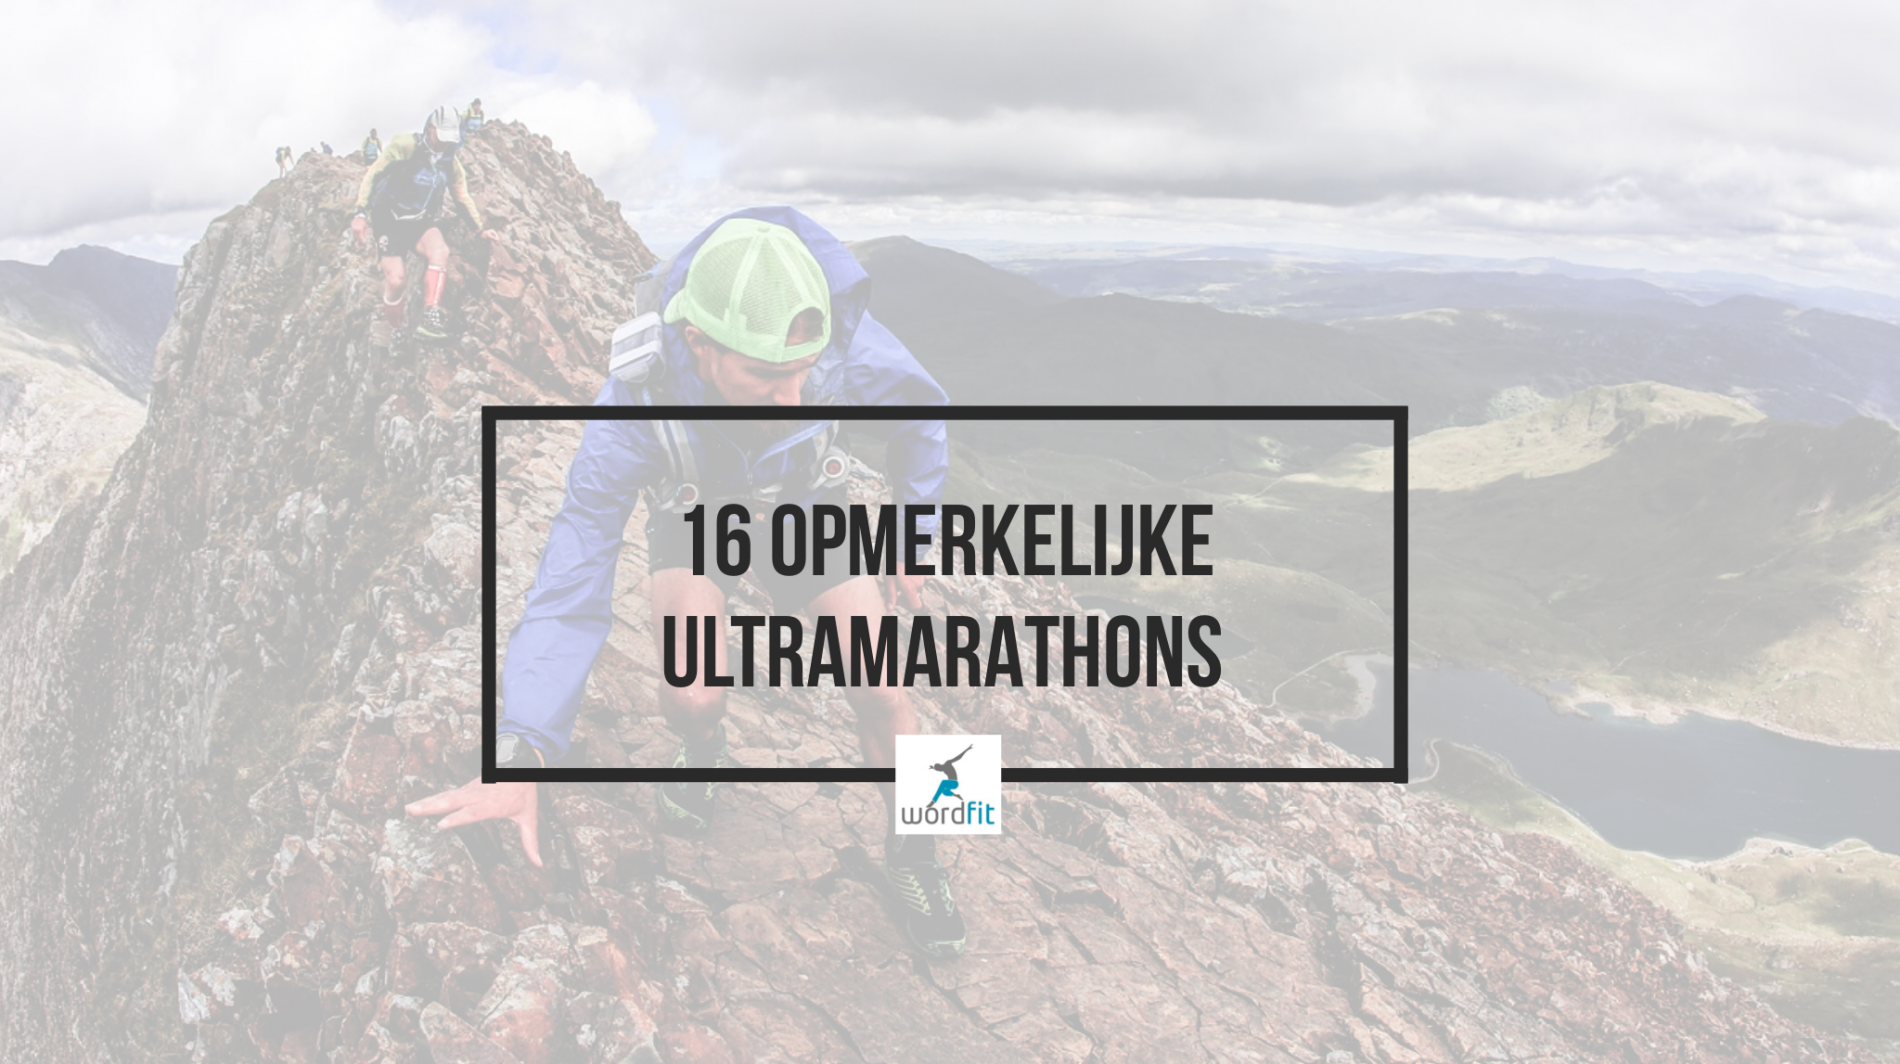 Extreme ultramarathons WordFit.be